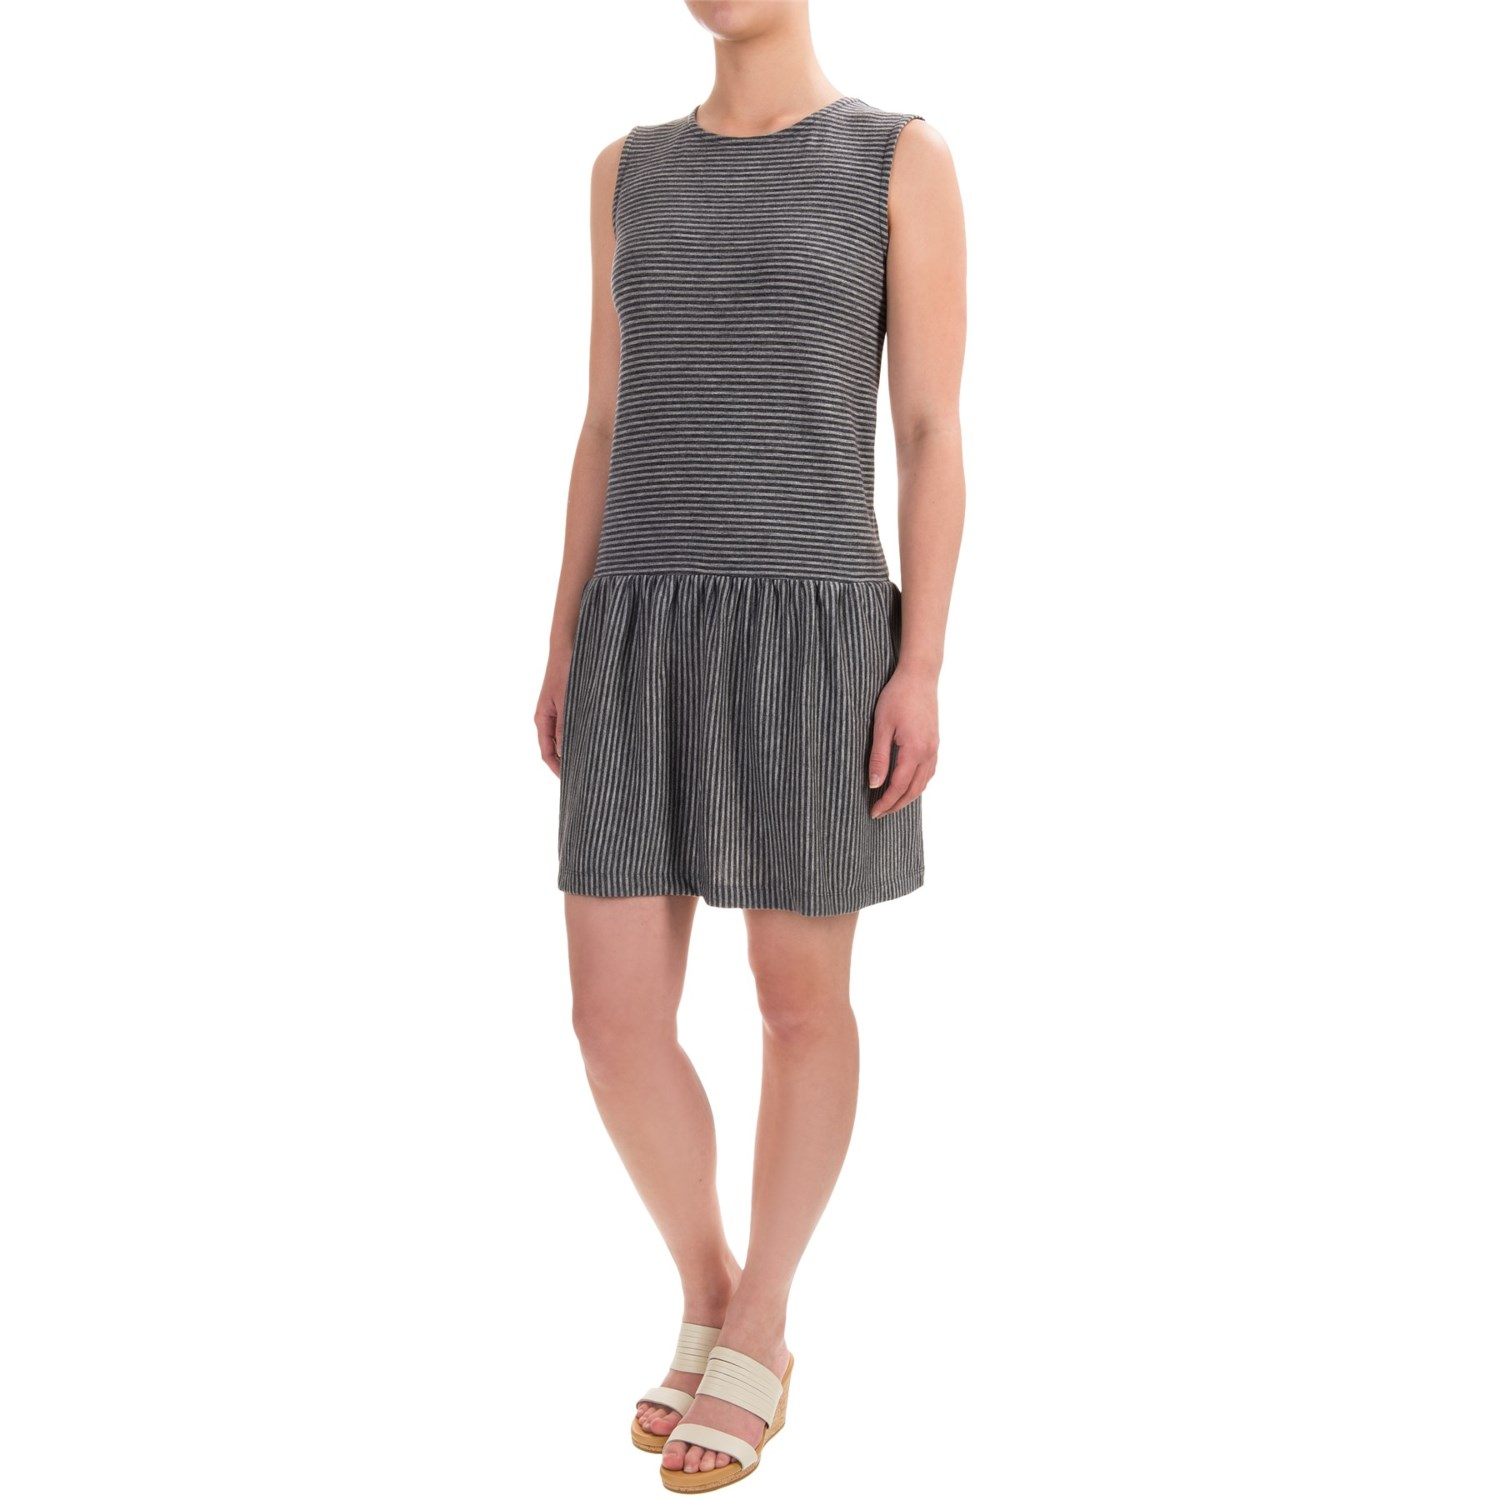 Artisan NY Striped Dress (For Women) - Save 81%